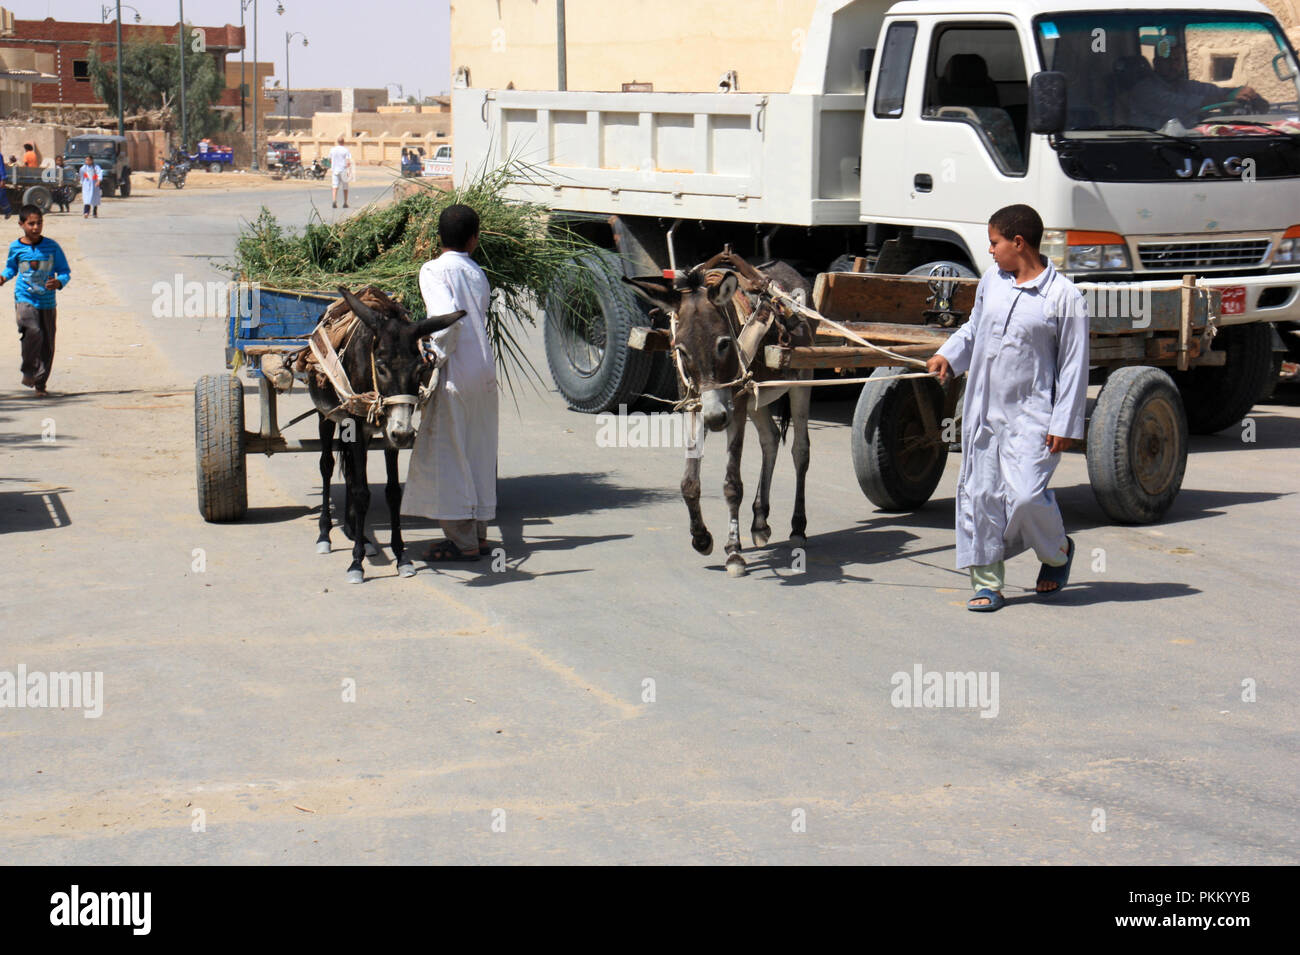 Two young teenagers guiding their donkeys through the traffic across the street in Siwa, Siwa Oasis, Egypt - Stock Image